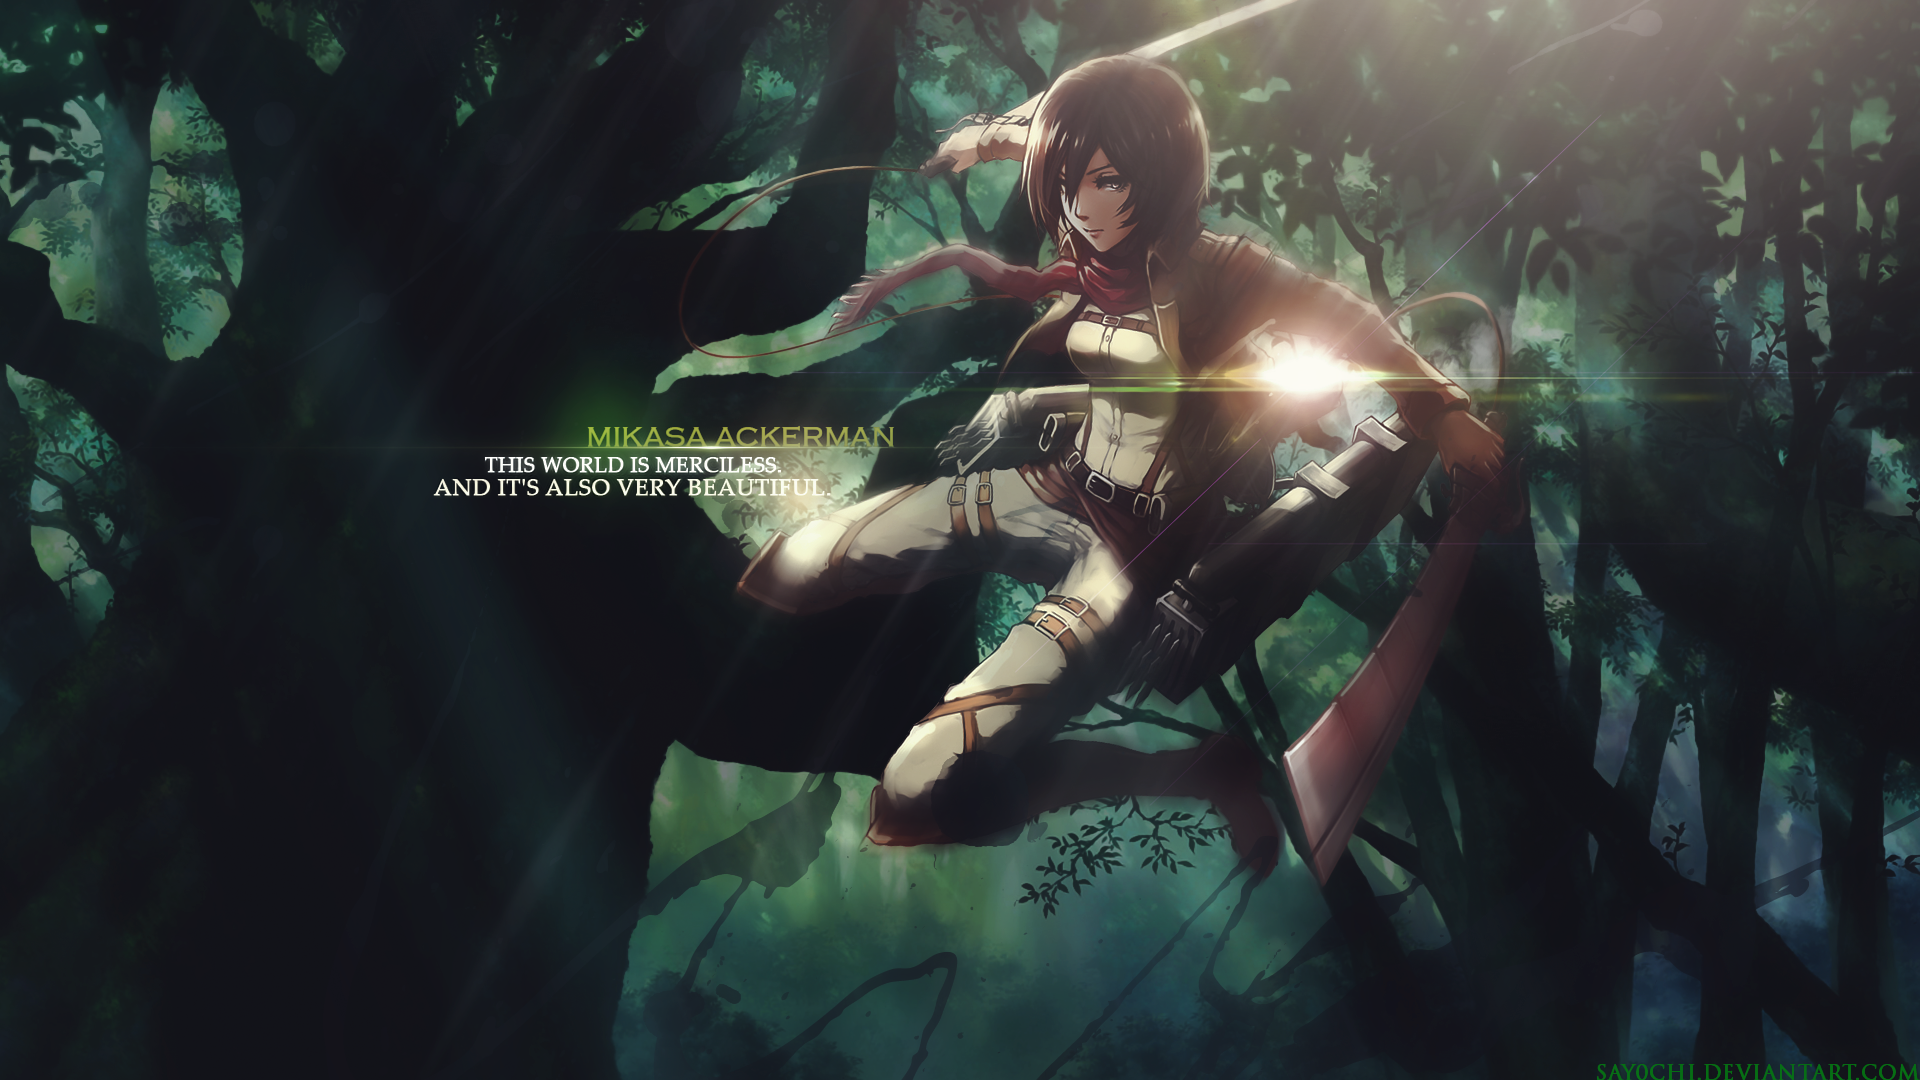 Mikasa Ackerman Shingeki No Kyojin Attack On Titan Wallpaper